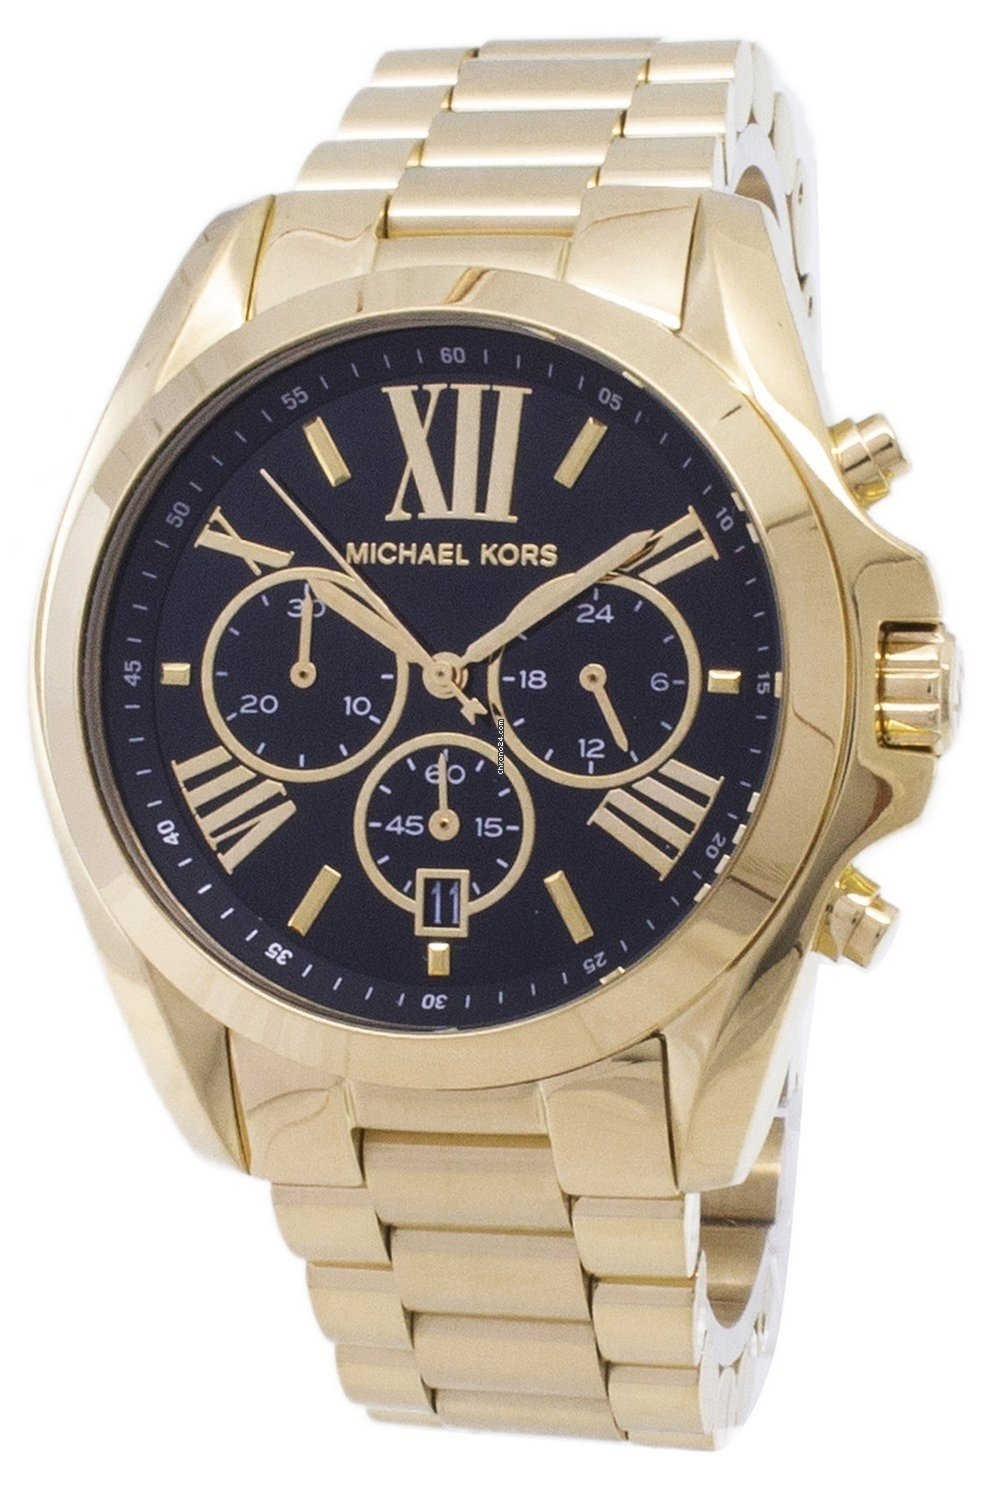 56927fa361 Michael Kors Bradshaw Chronograph MK5739 Women's Watch for Rs. 11,708 for  sale from a Seller on Chrono24